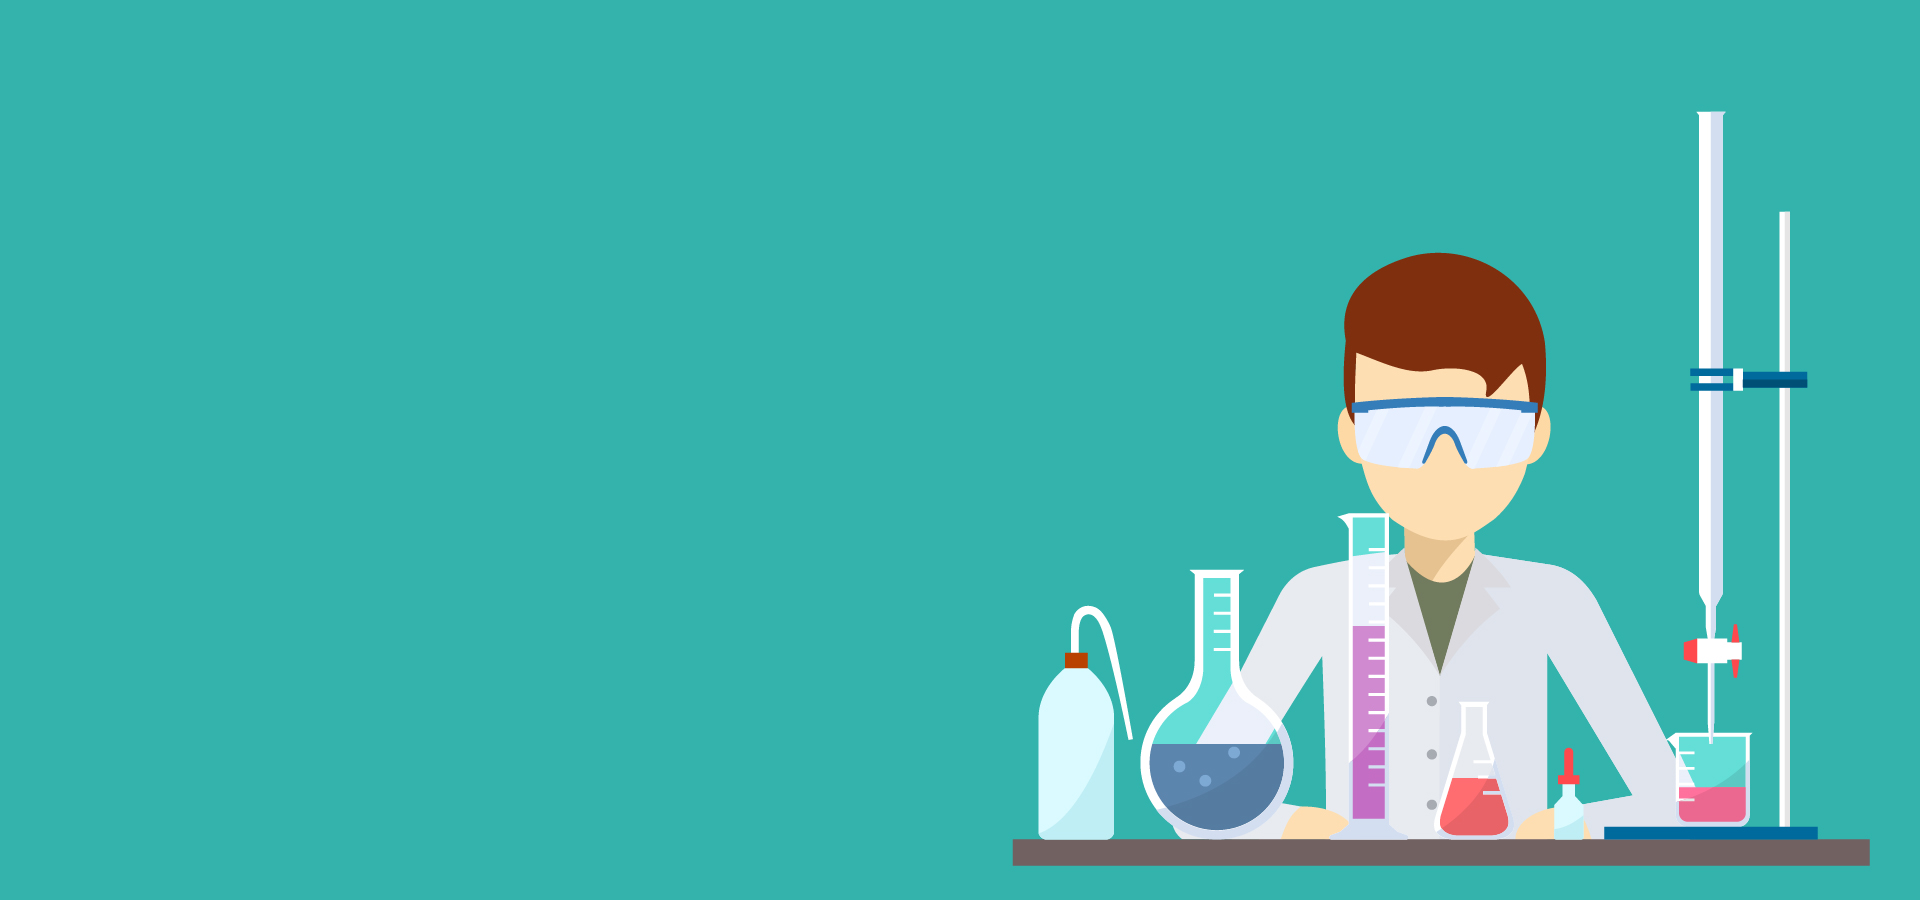 So you want to be a chemist?